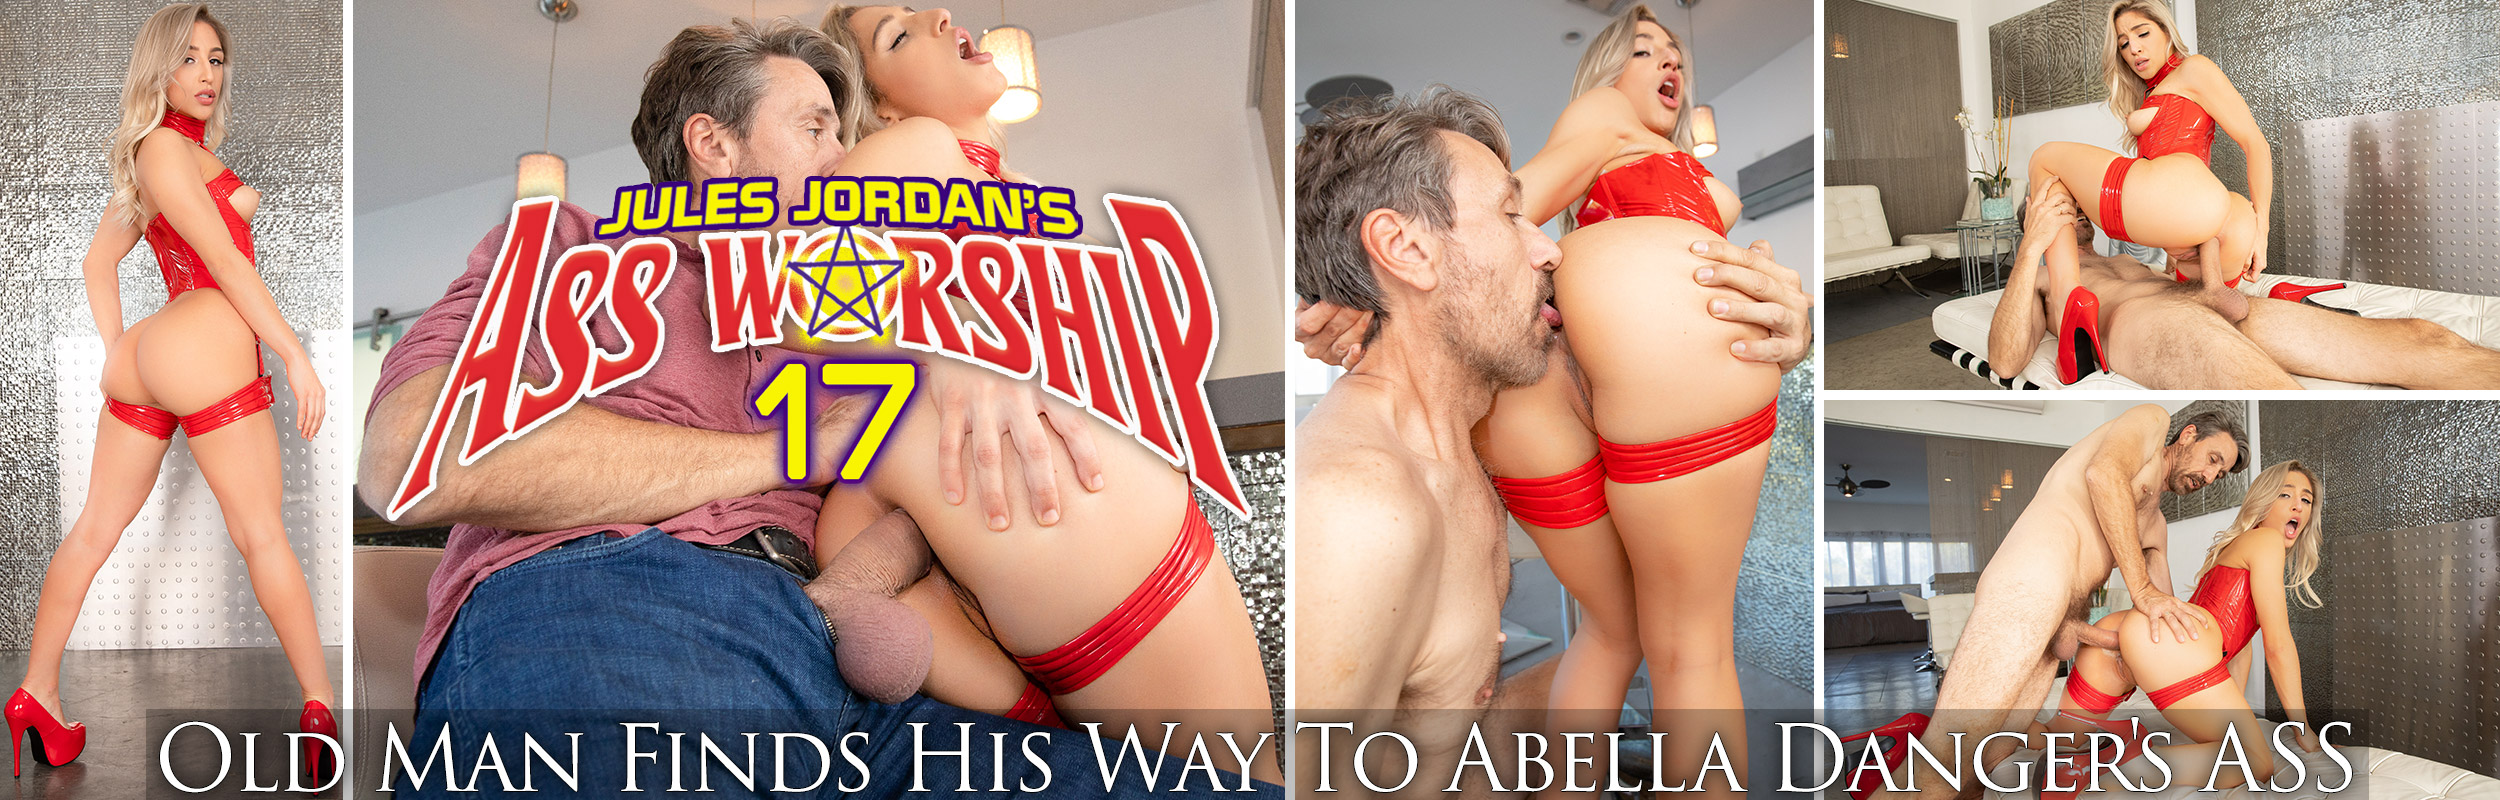 Old Man Finds His Way To Abella Danger's ASS